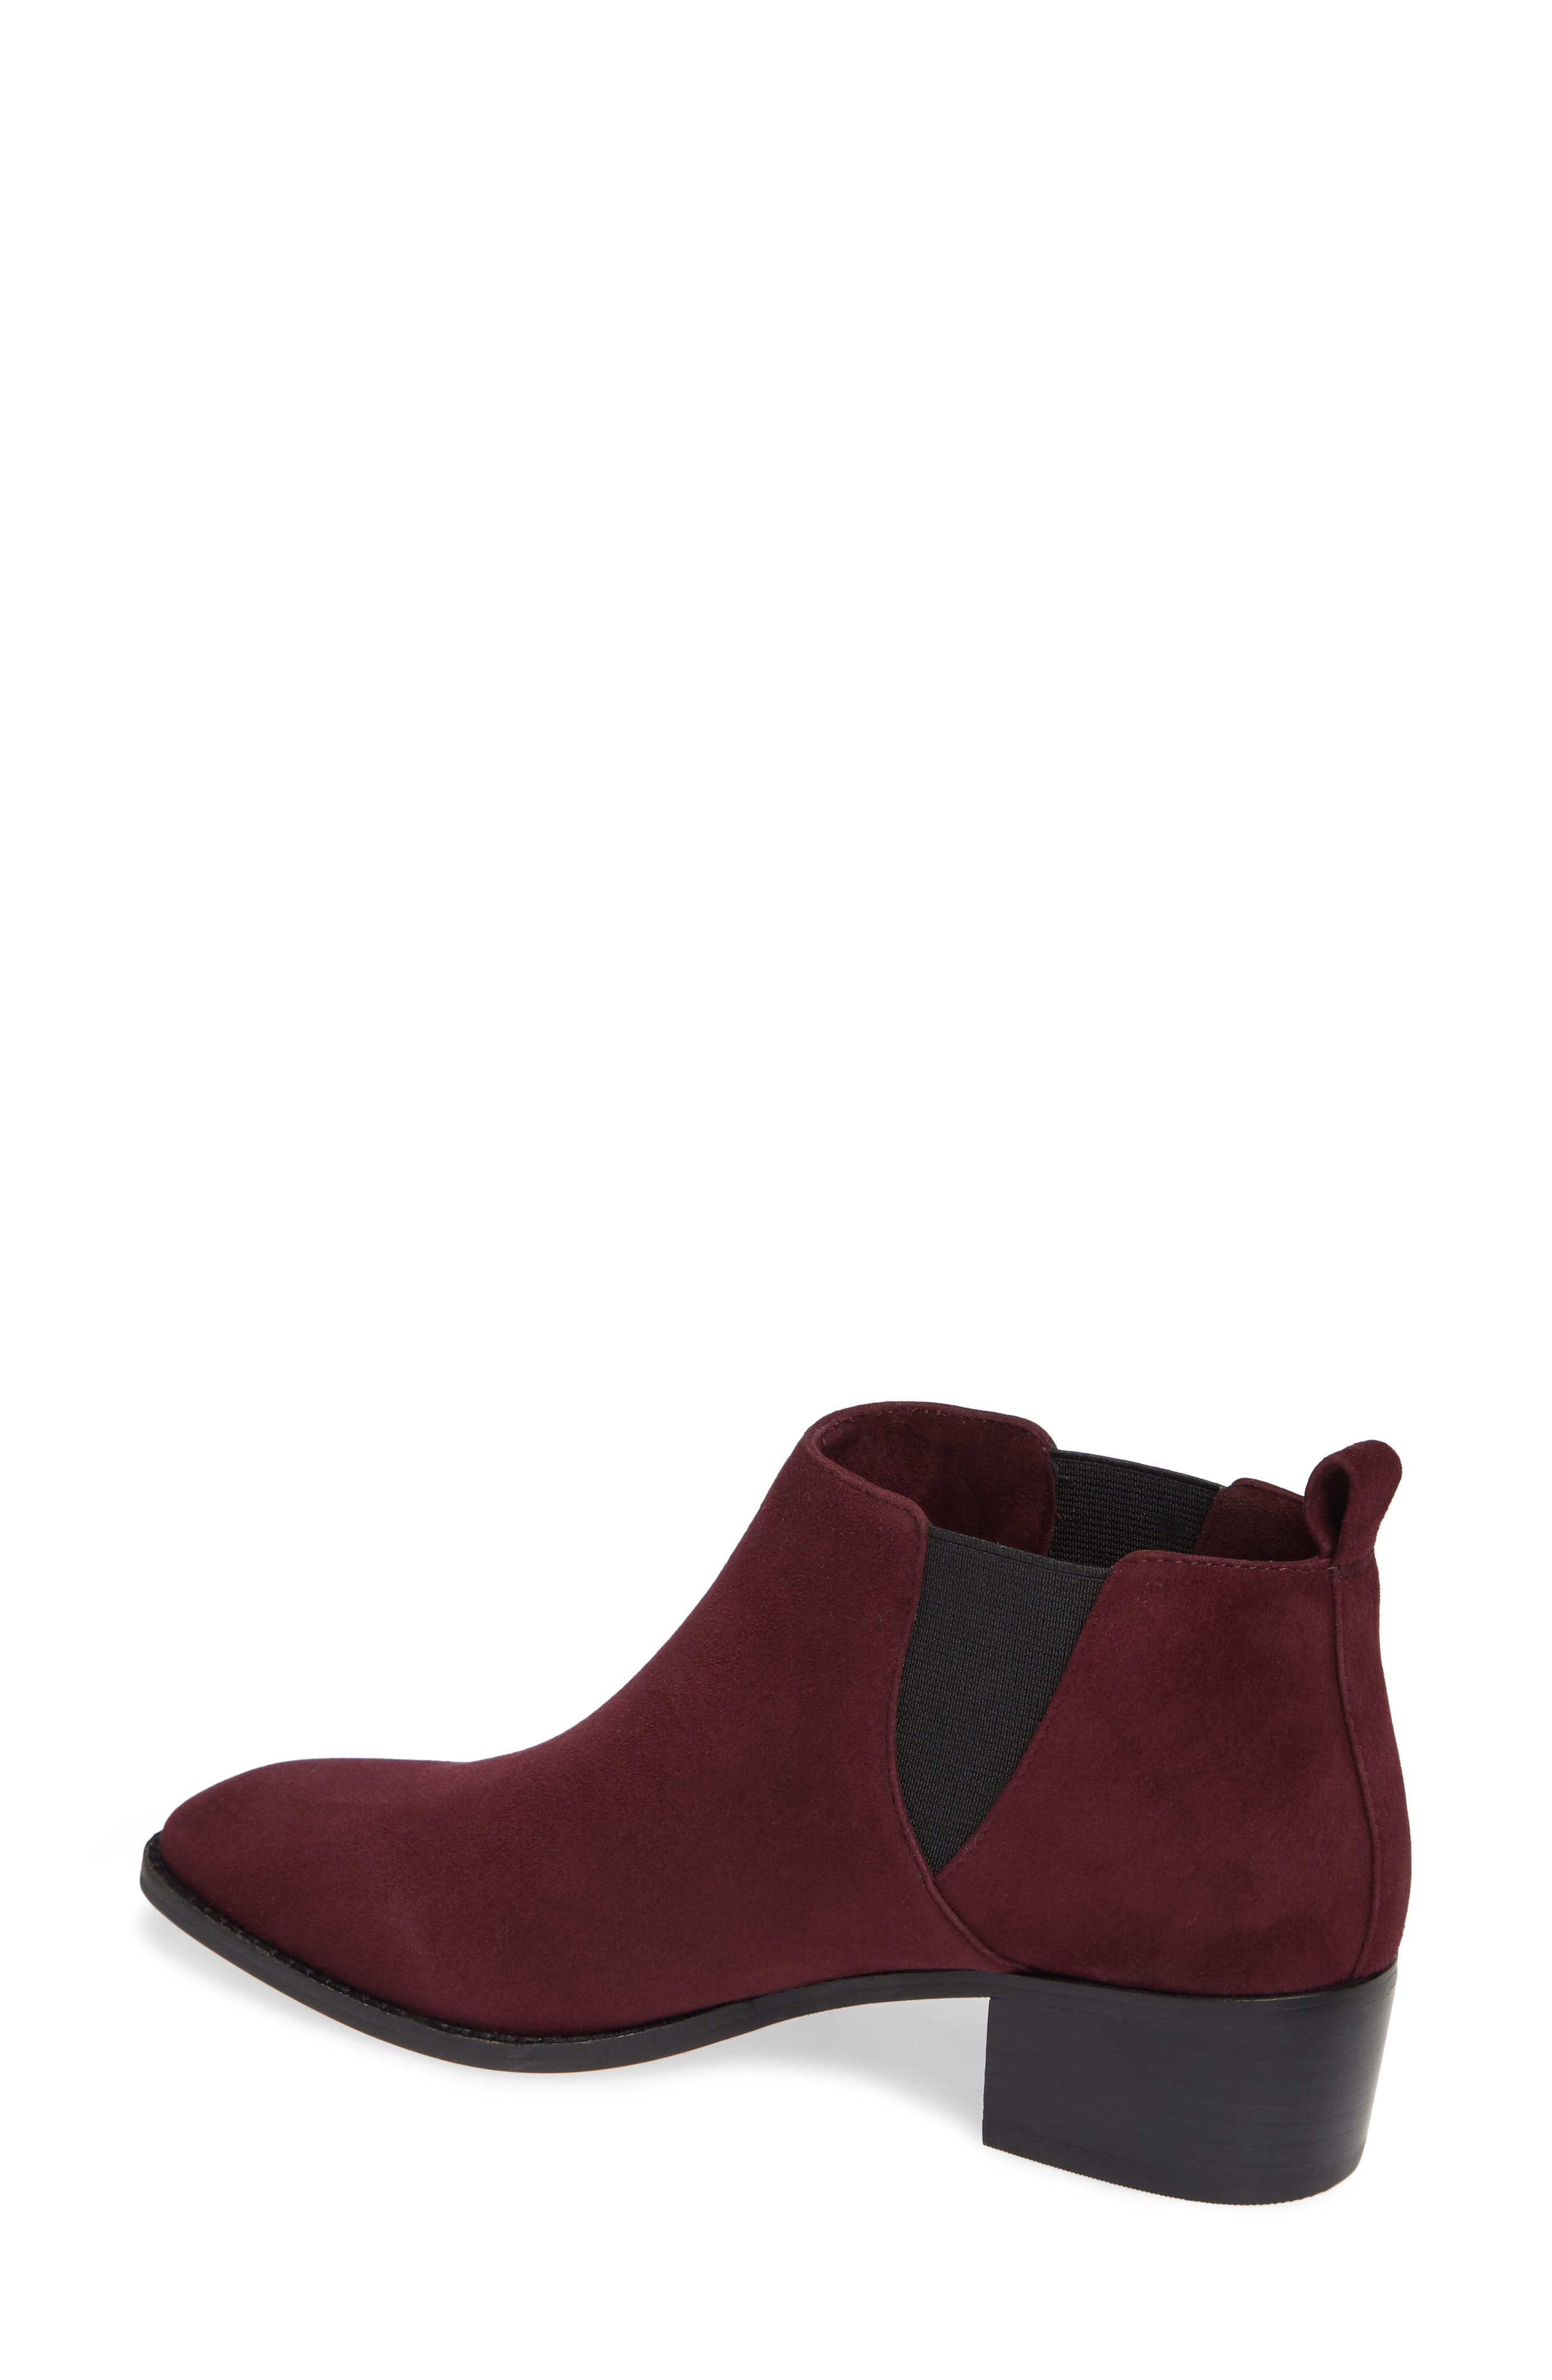 Jahlily Chelsea Bootie,                             Alternate thumbnail 2, color,                             DARK PLUM SUEDE